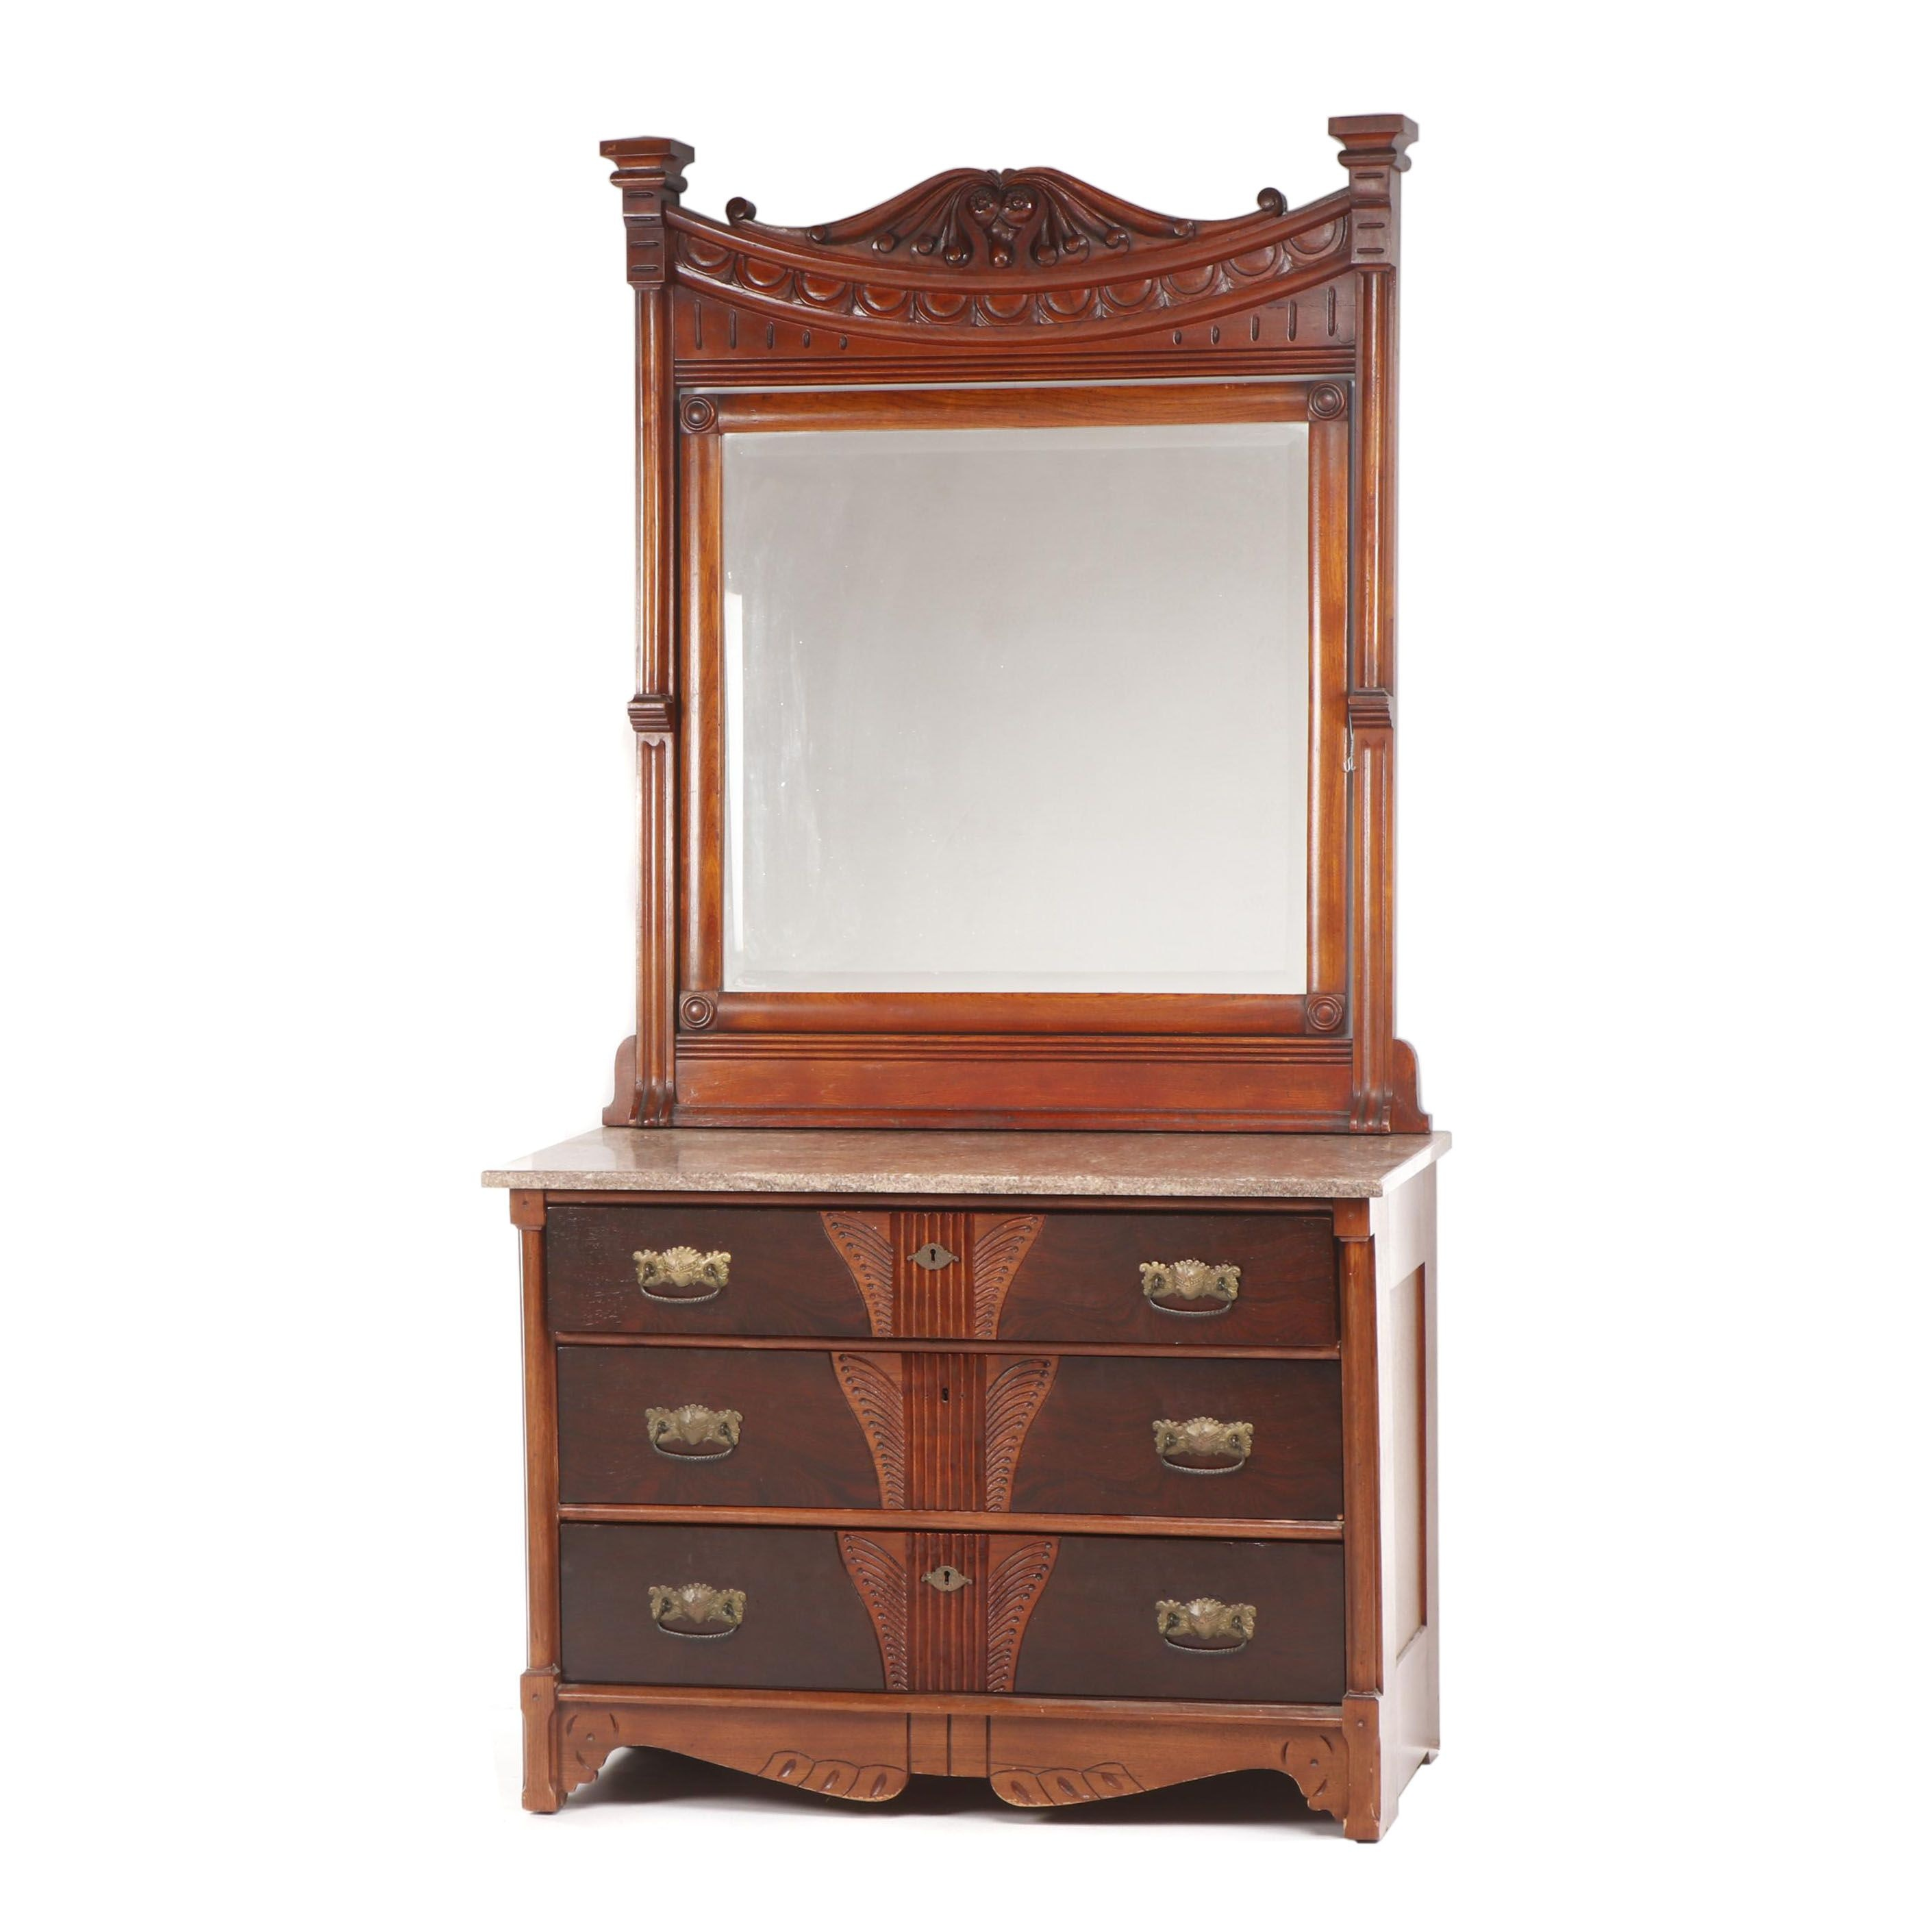 Victorian Walnut and Rosewood Chest of Drawers with Mirror & Marble Top, 19th C